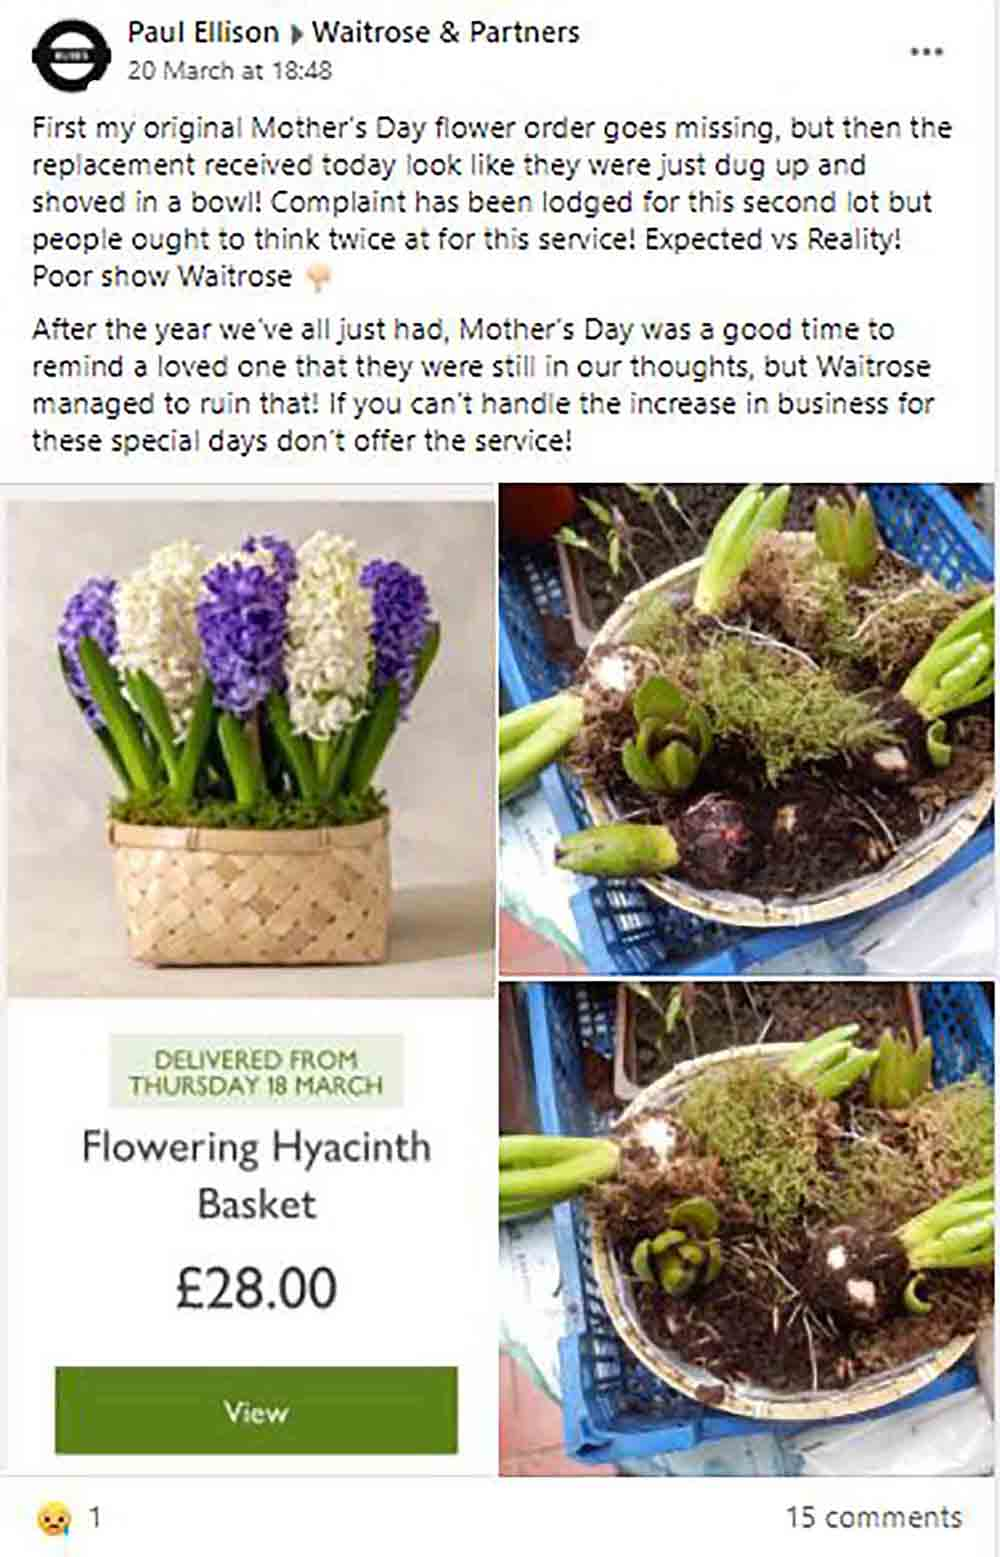 Customer rages at Waitrose for terrible Mothers Day flowers - Consumer News UK